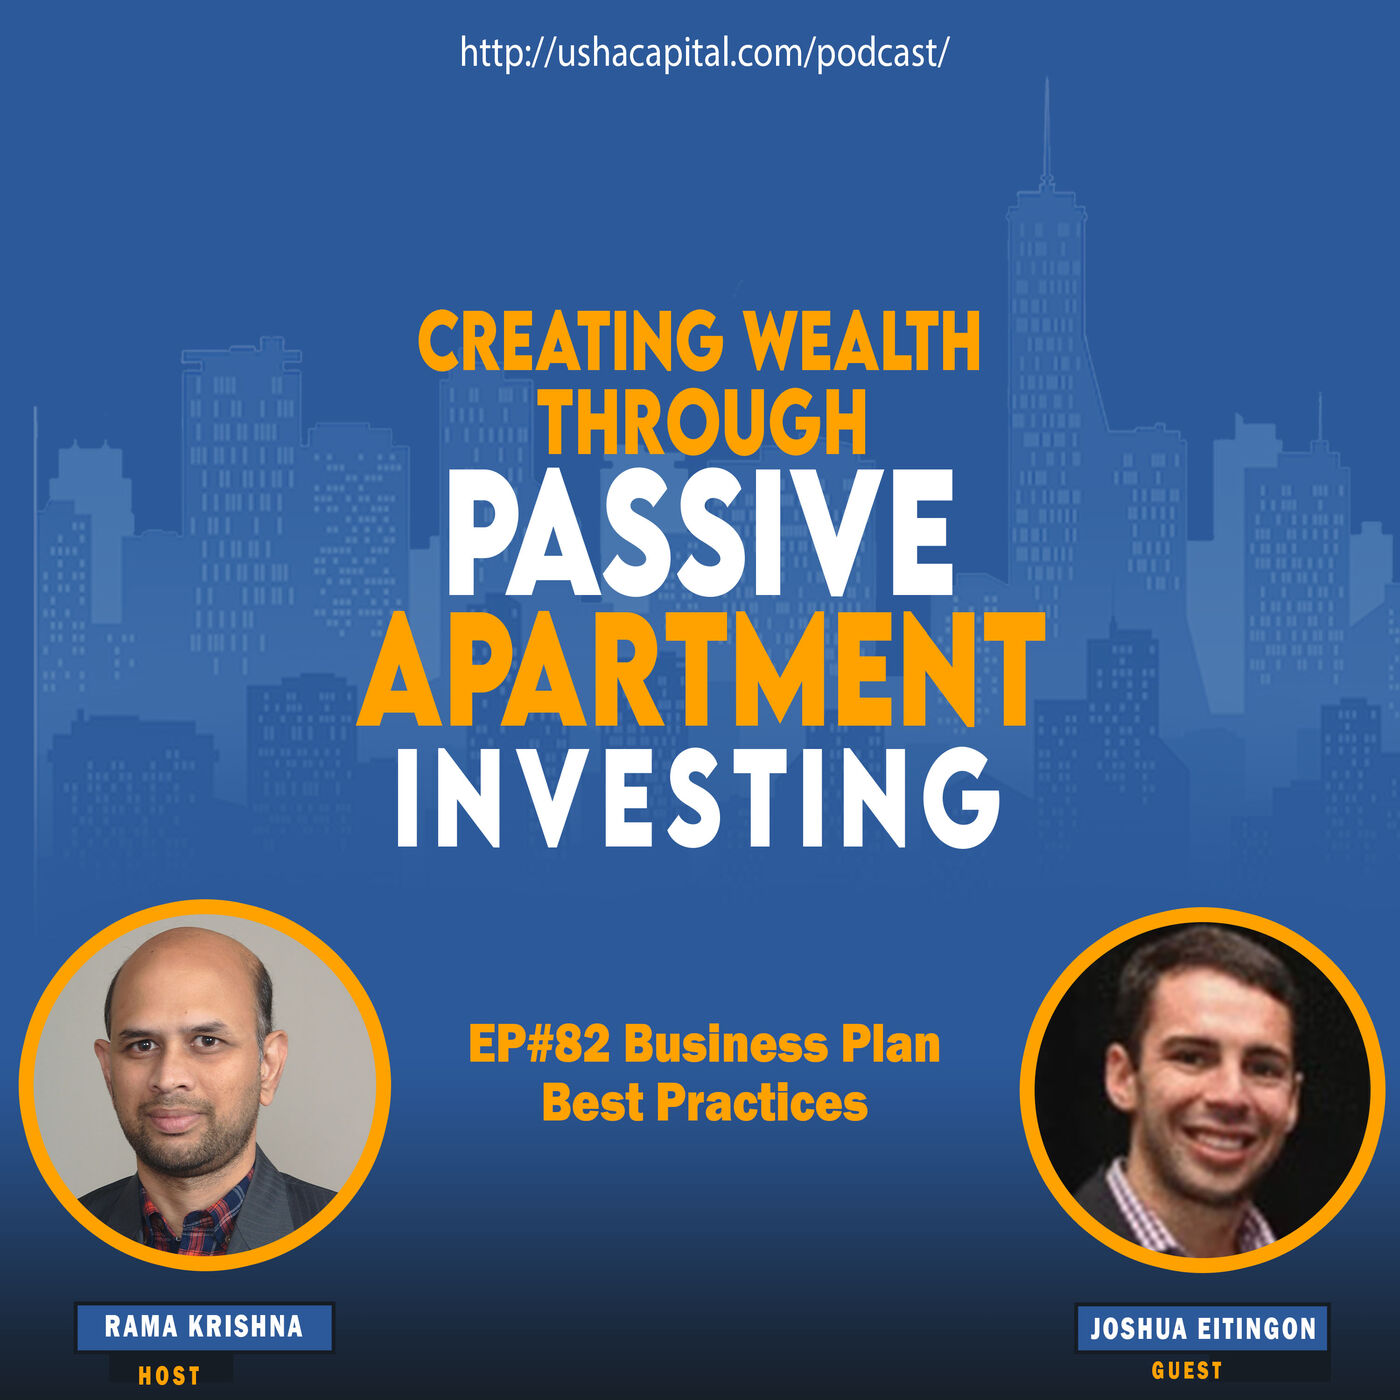 EP#82 Business Plan Best Practices with Joshua Eitingon